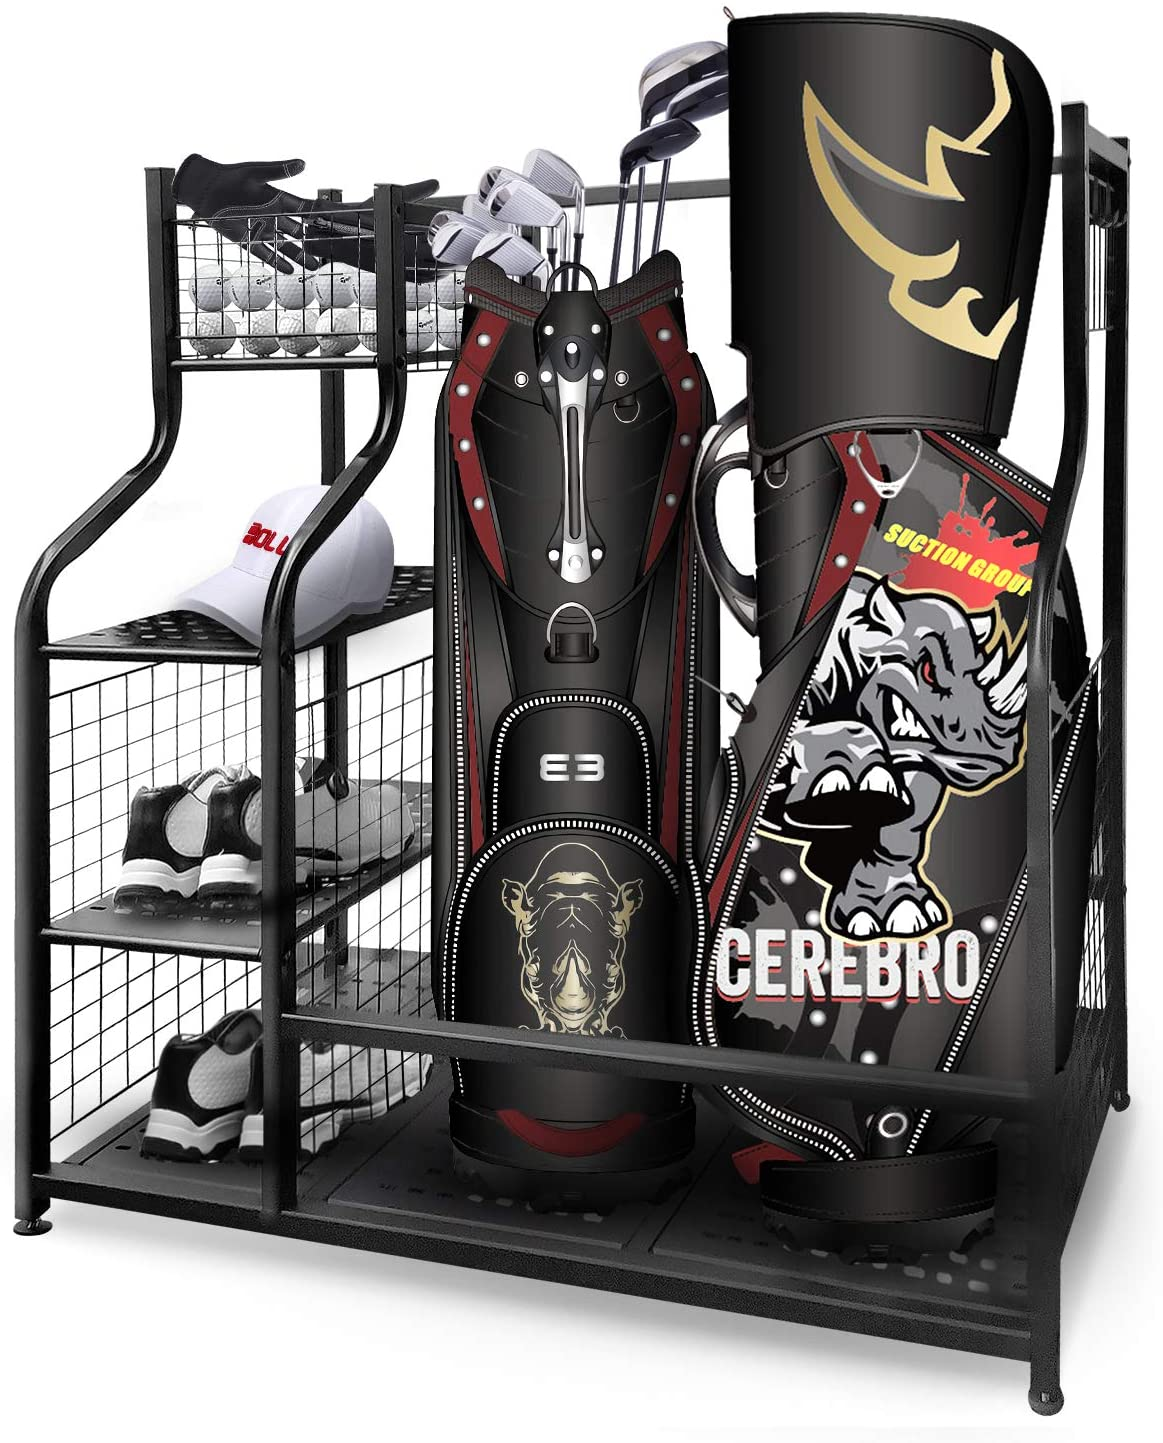 Golf Storage Garage Organizer,Golf Bag Storage Stand and Other Golfing Equipment Rack,Extra Large Design for Golf Clubs Accesso